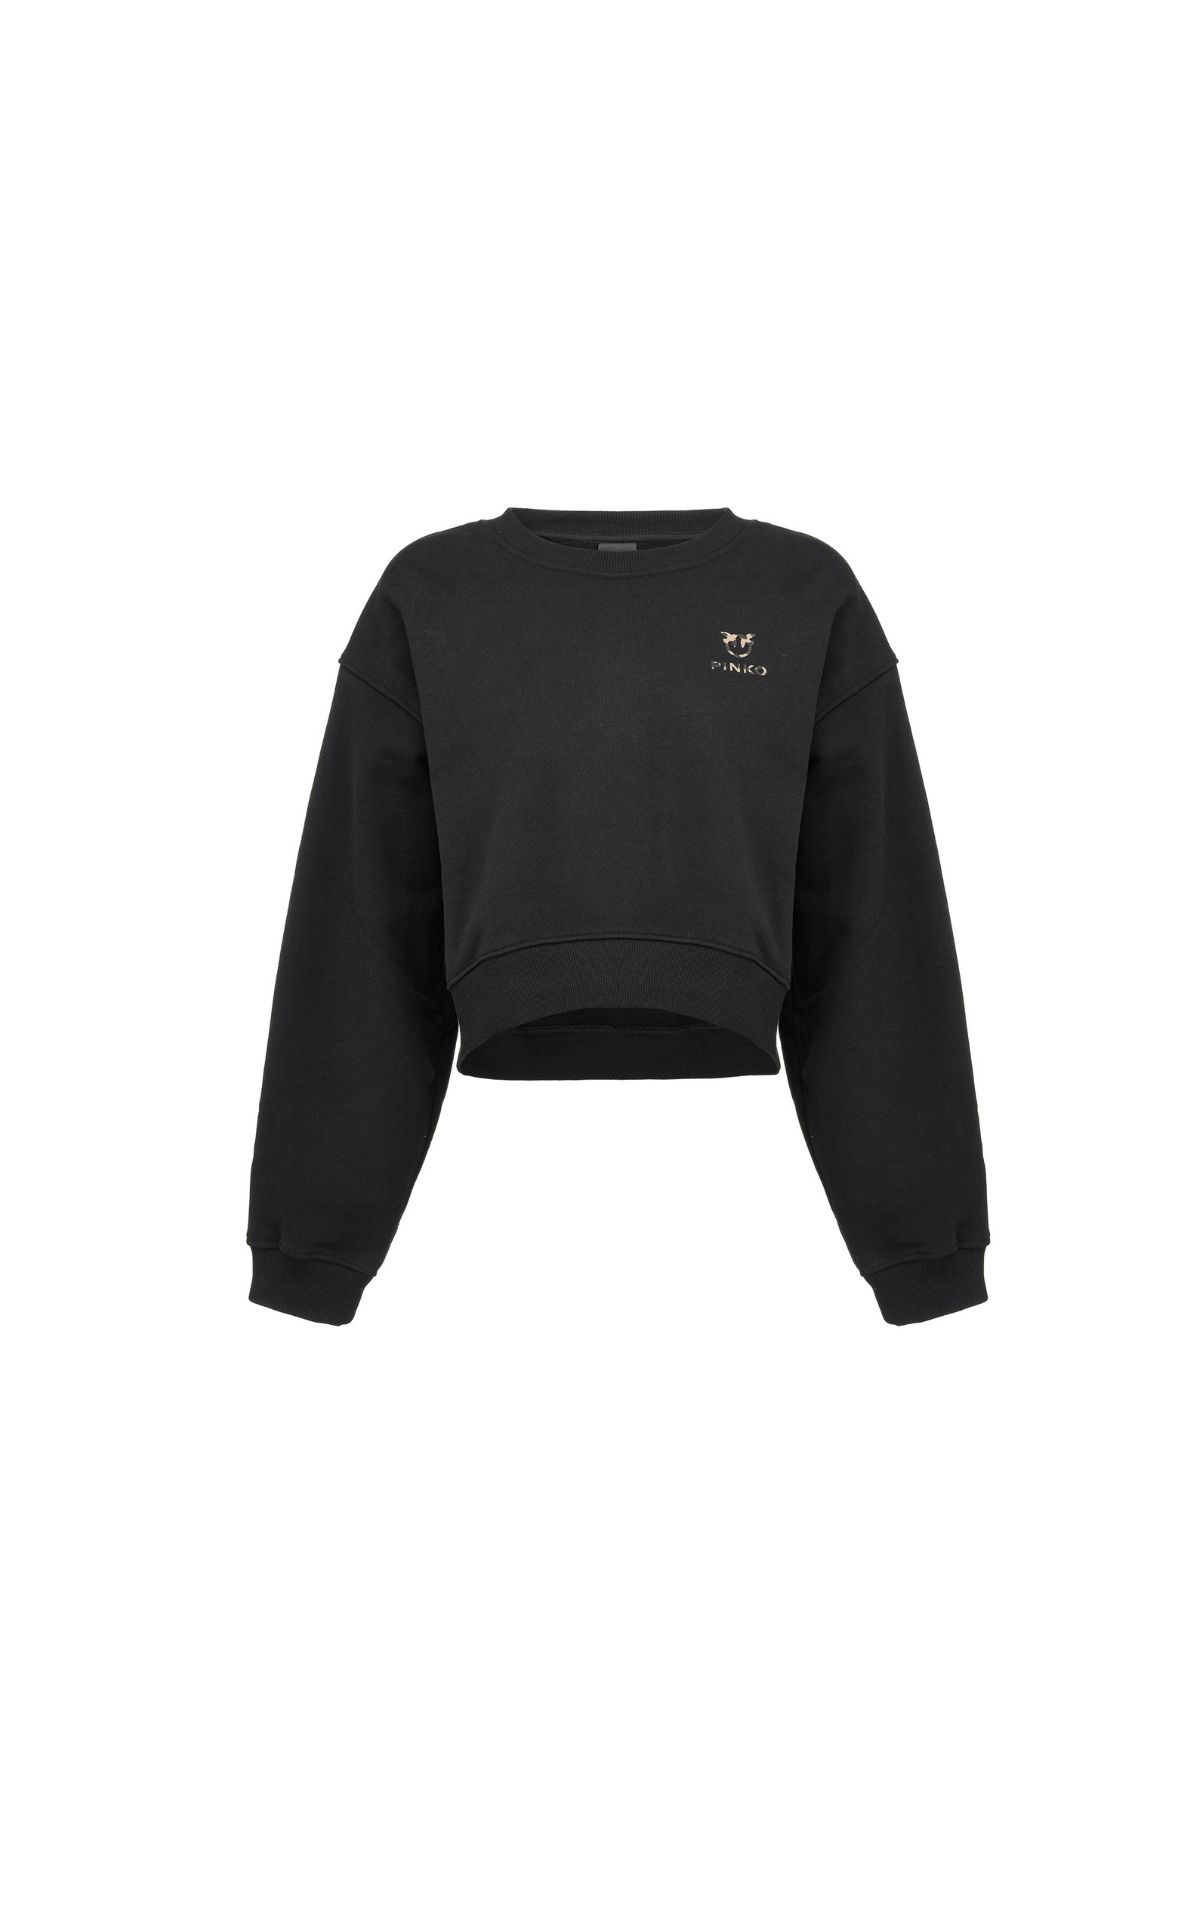 Black sweatshirt Pinko